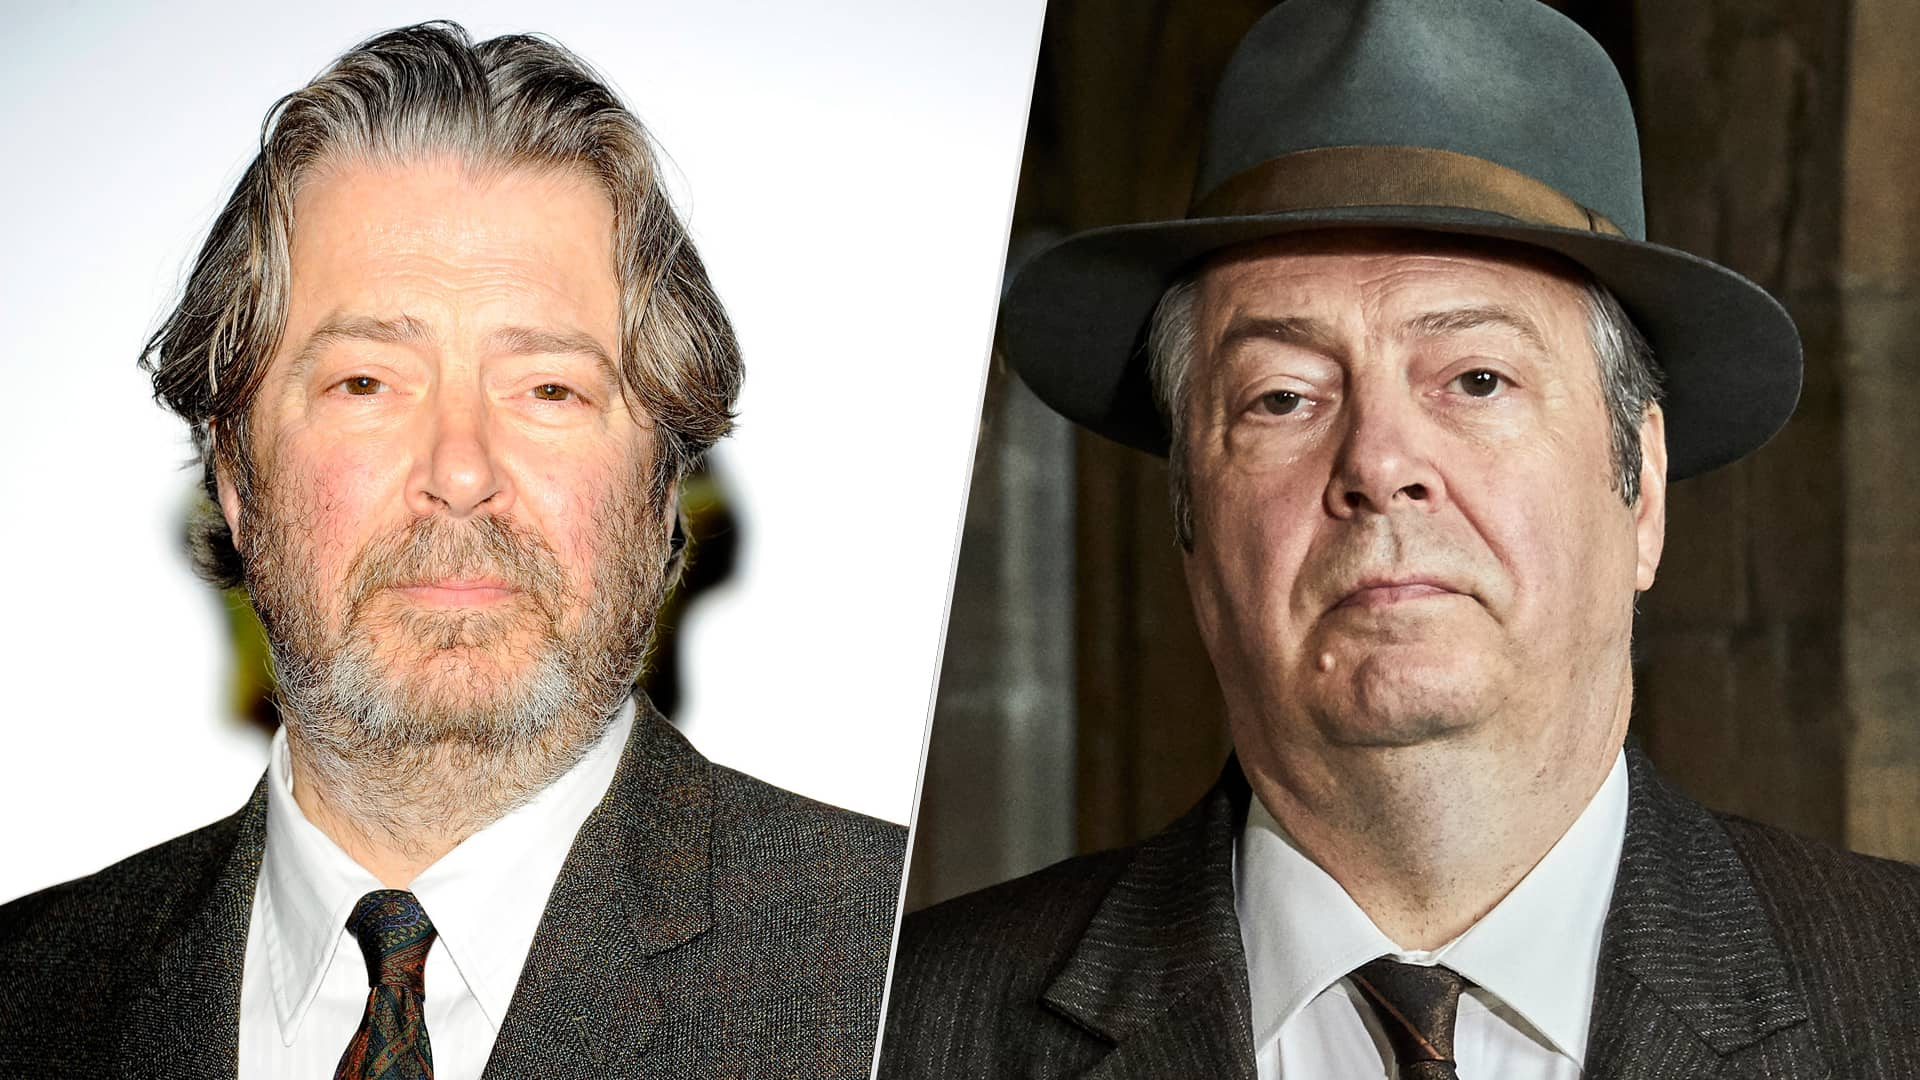 Roger Allam is DI Fred Thursday in Endeavour on MASTERPIECE on PBS